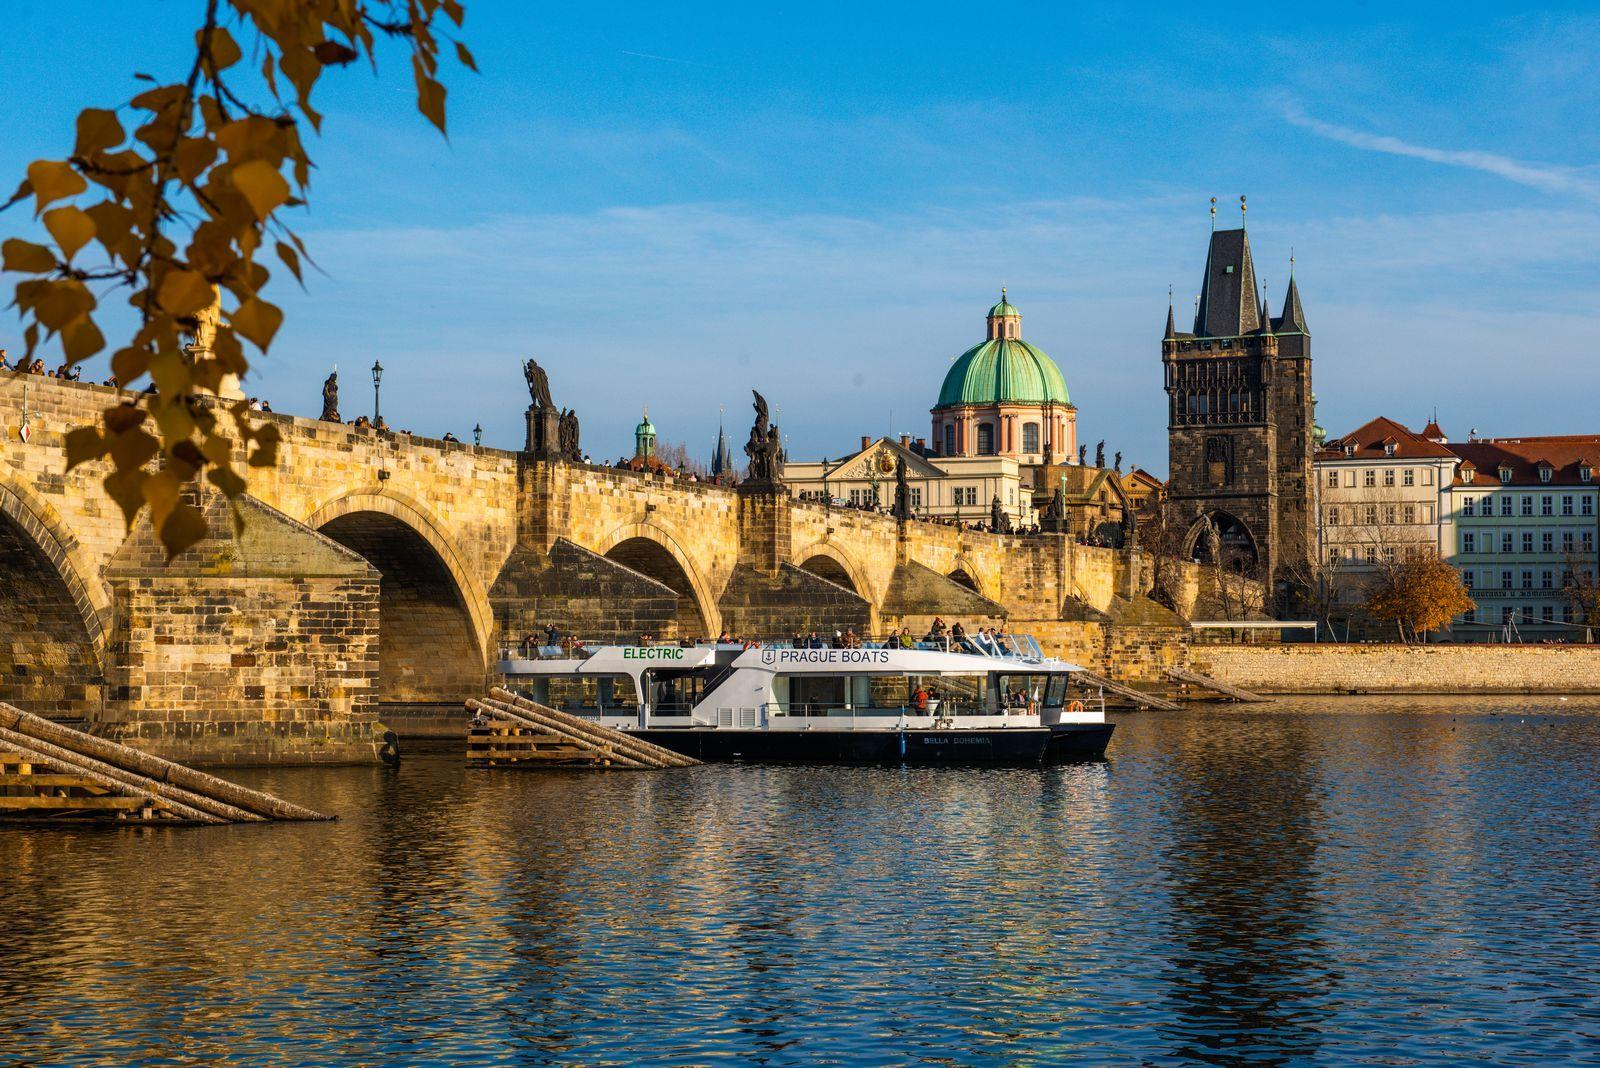 The Bella Bohemia Boat by the Charles Bridge